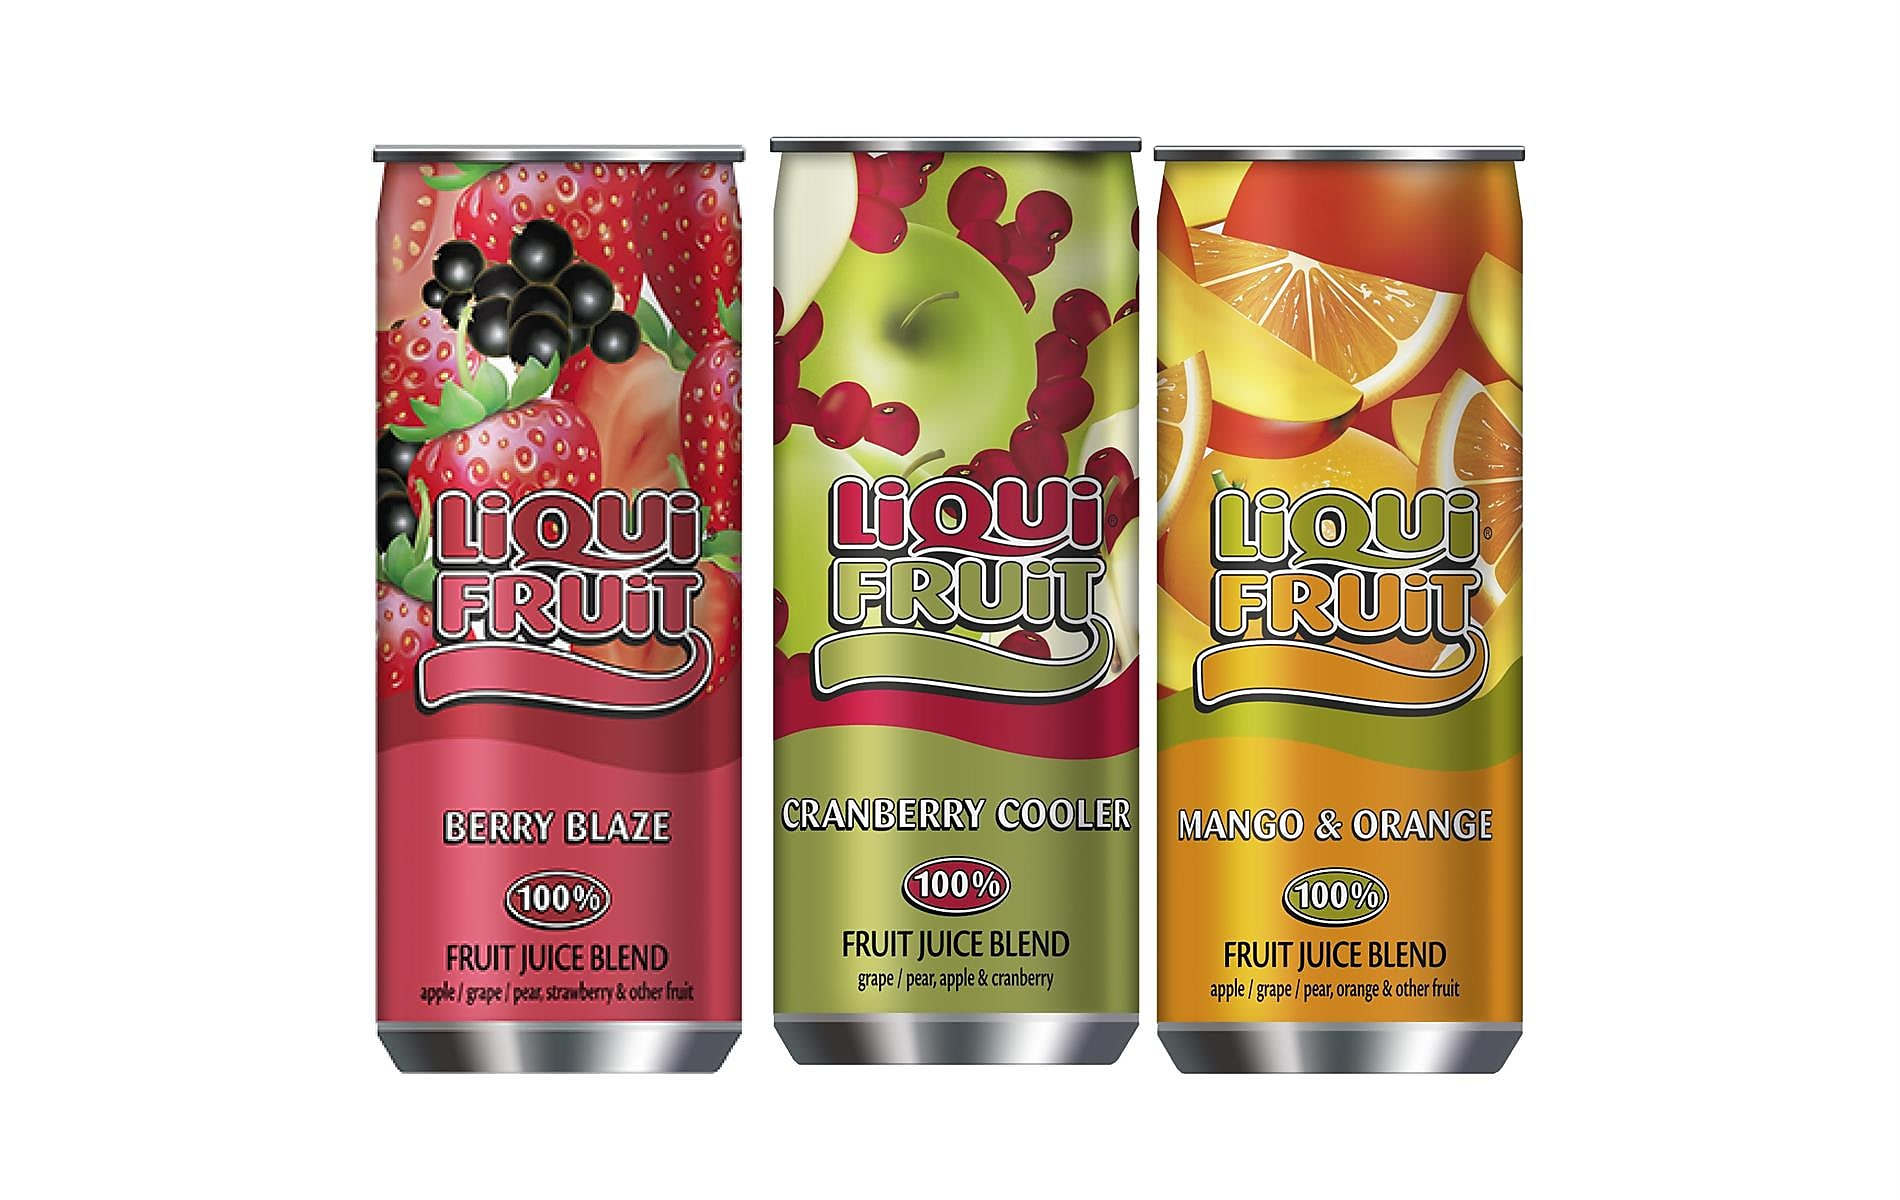 Liqui Fruit Trio